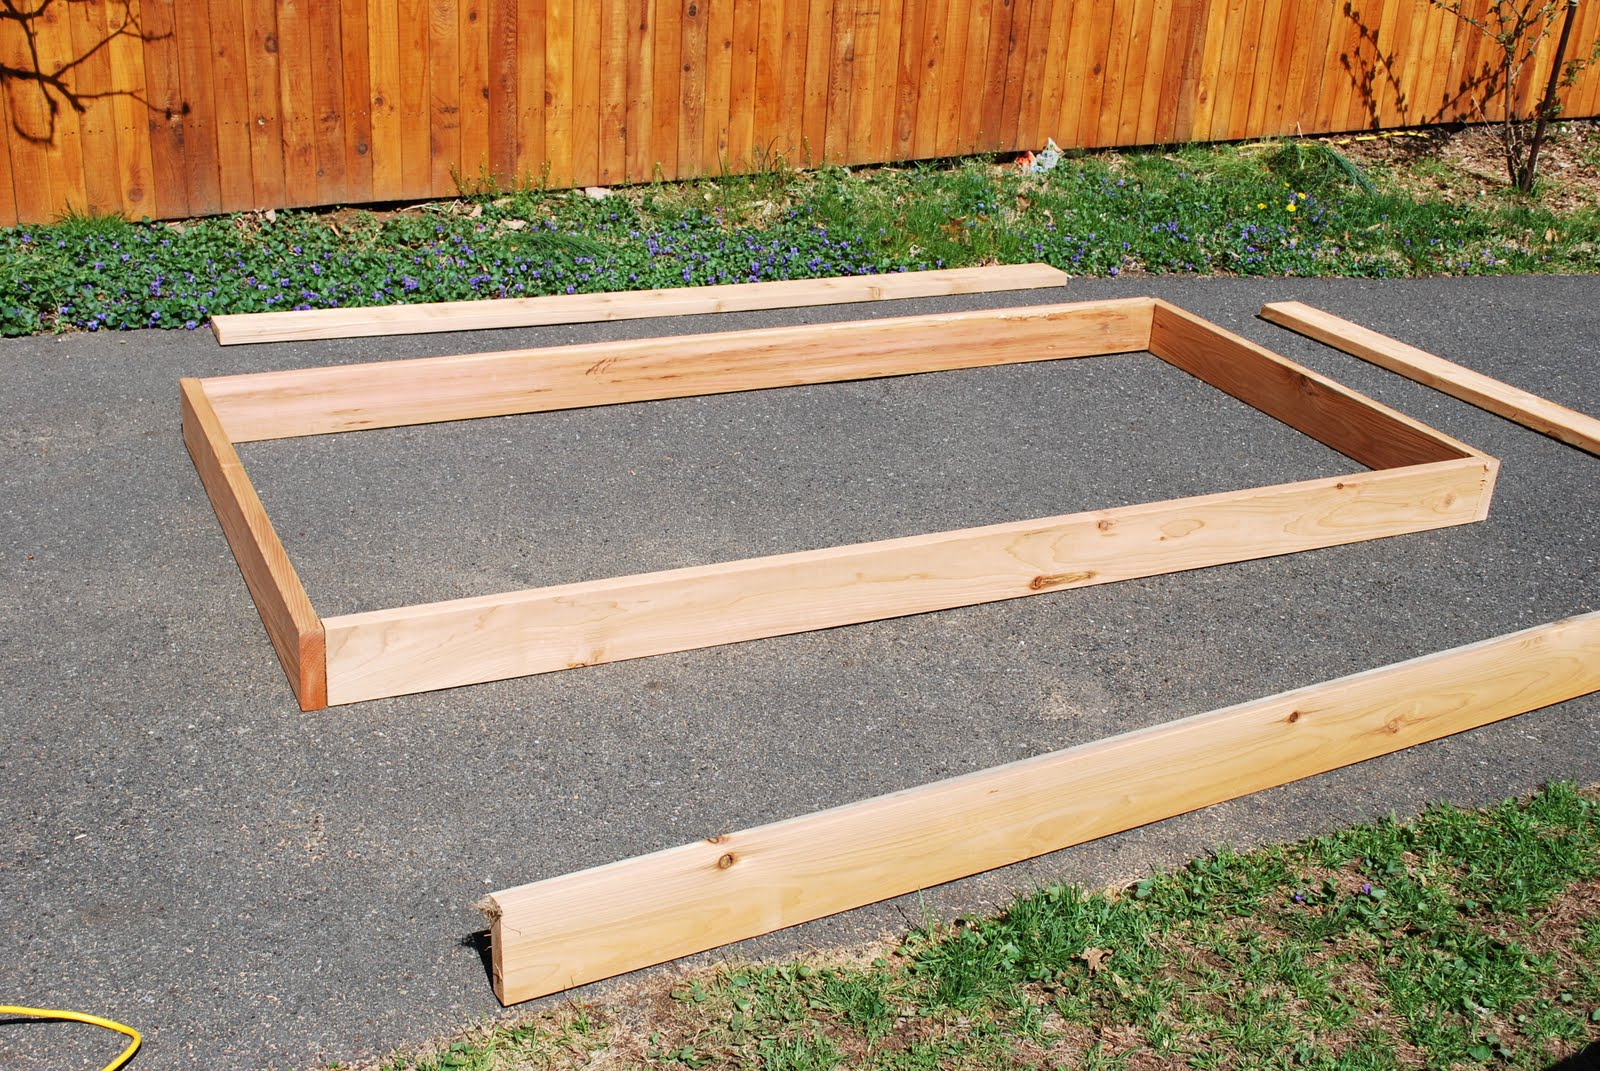 Home Depot Raised Garden Beds Terrasse En Bois